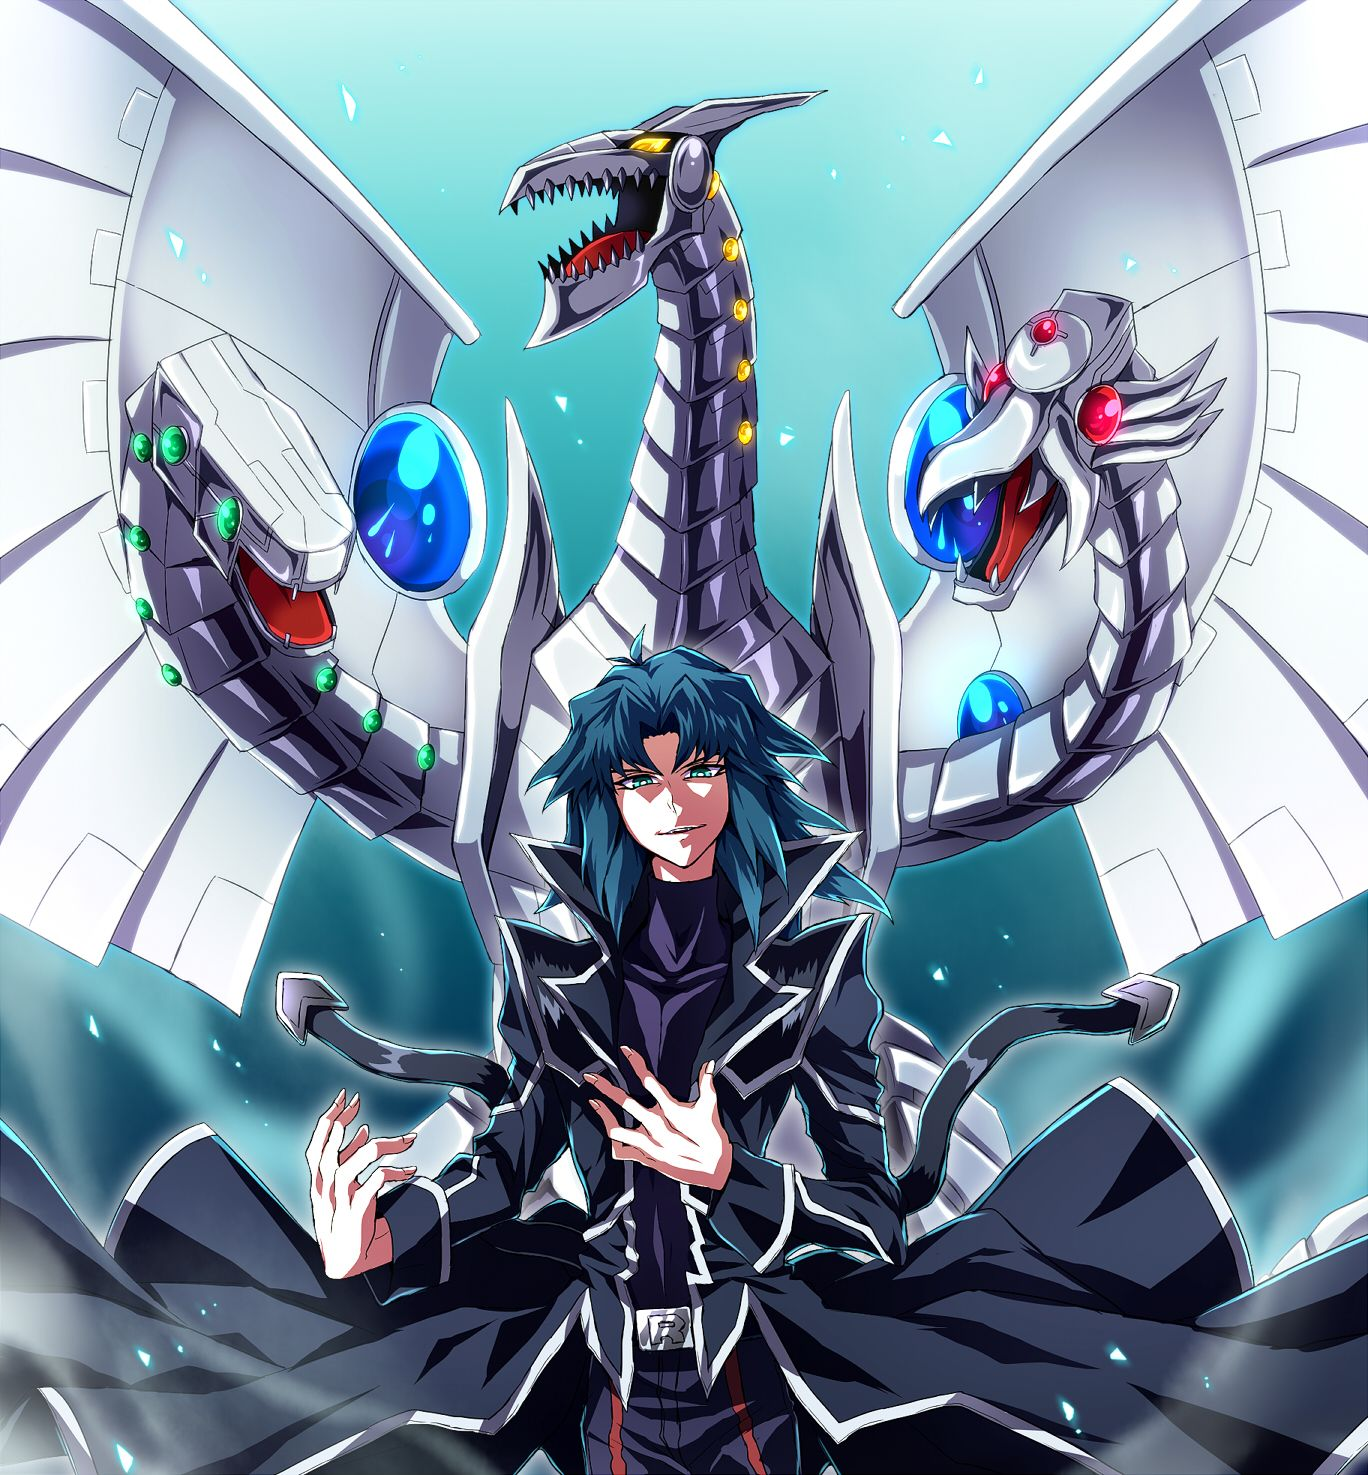 Yugioh Zane And Cyber End Dragon Yugioh Pinterest Yugioh